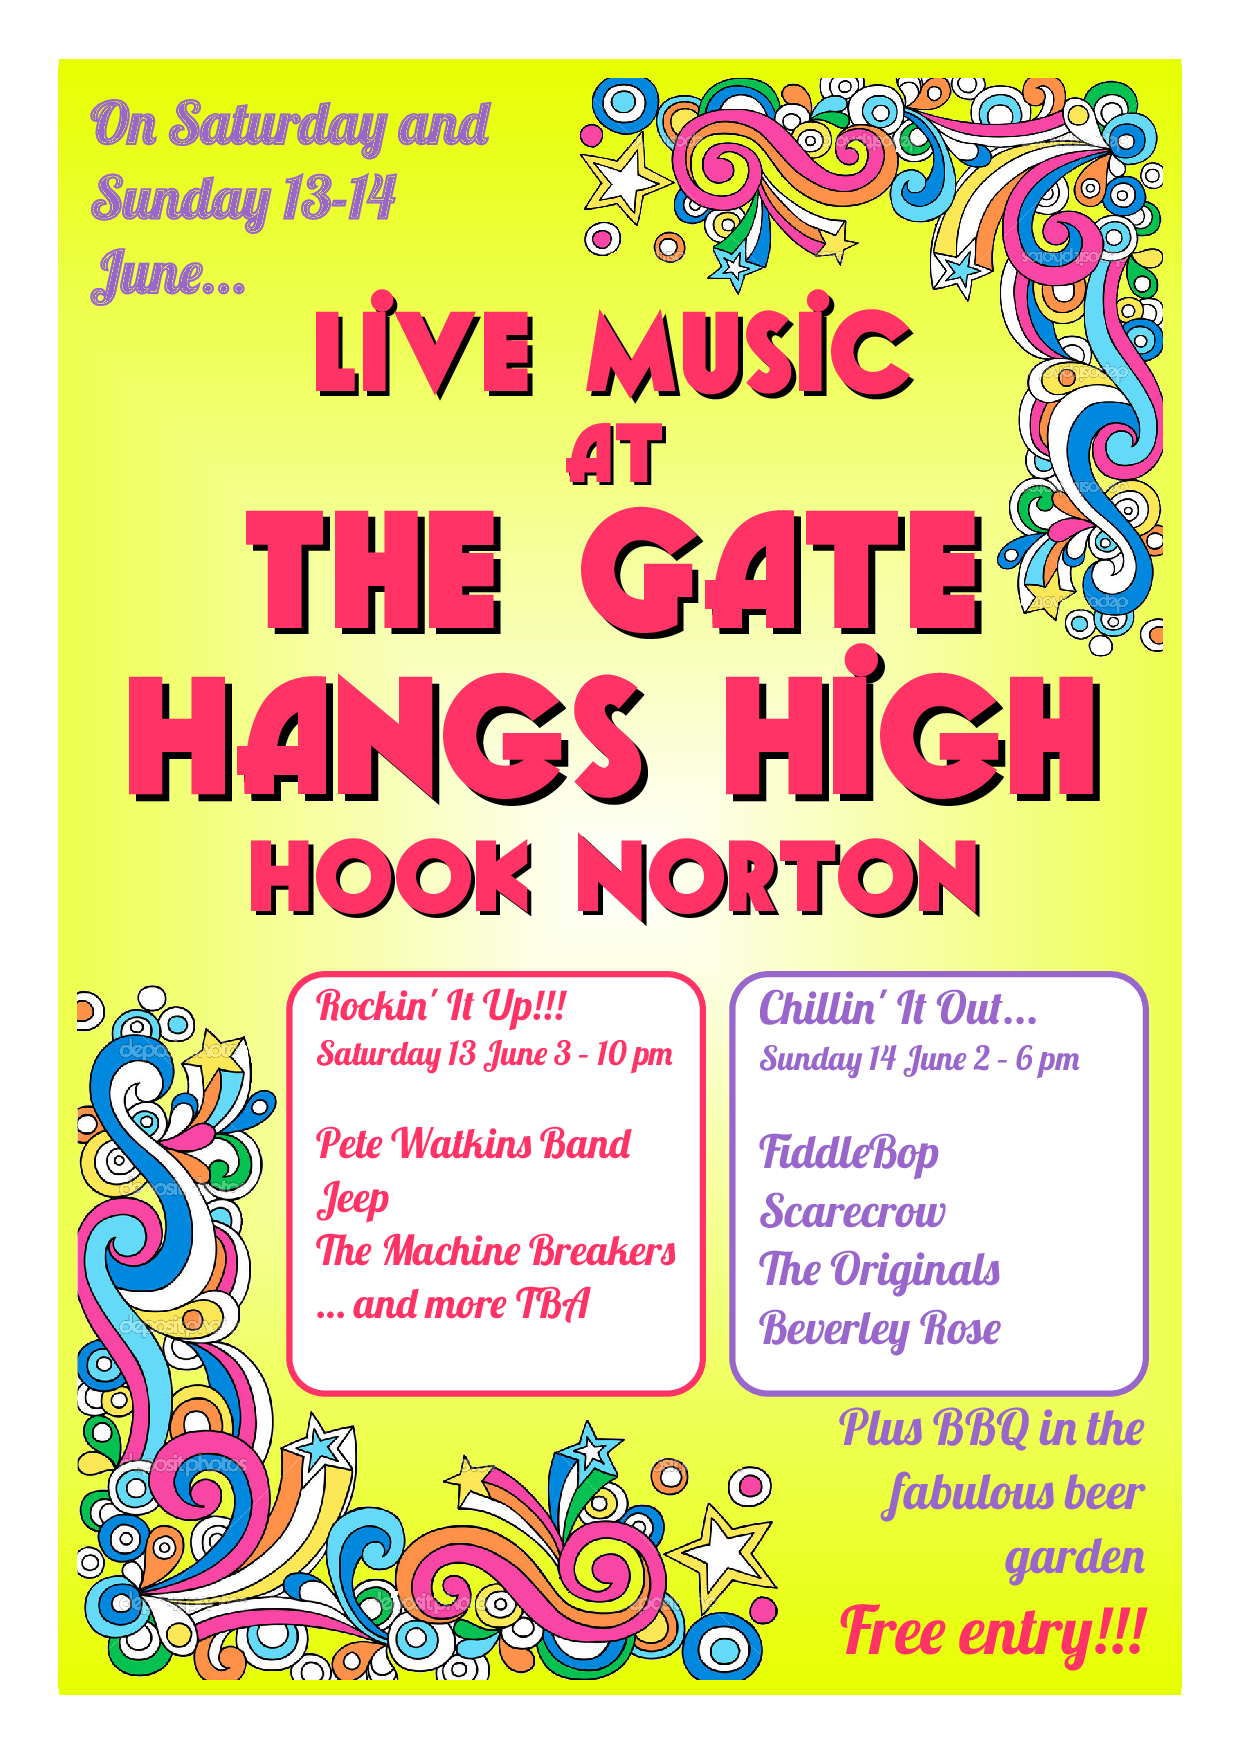 Live Music at The Gate Hangs High